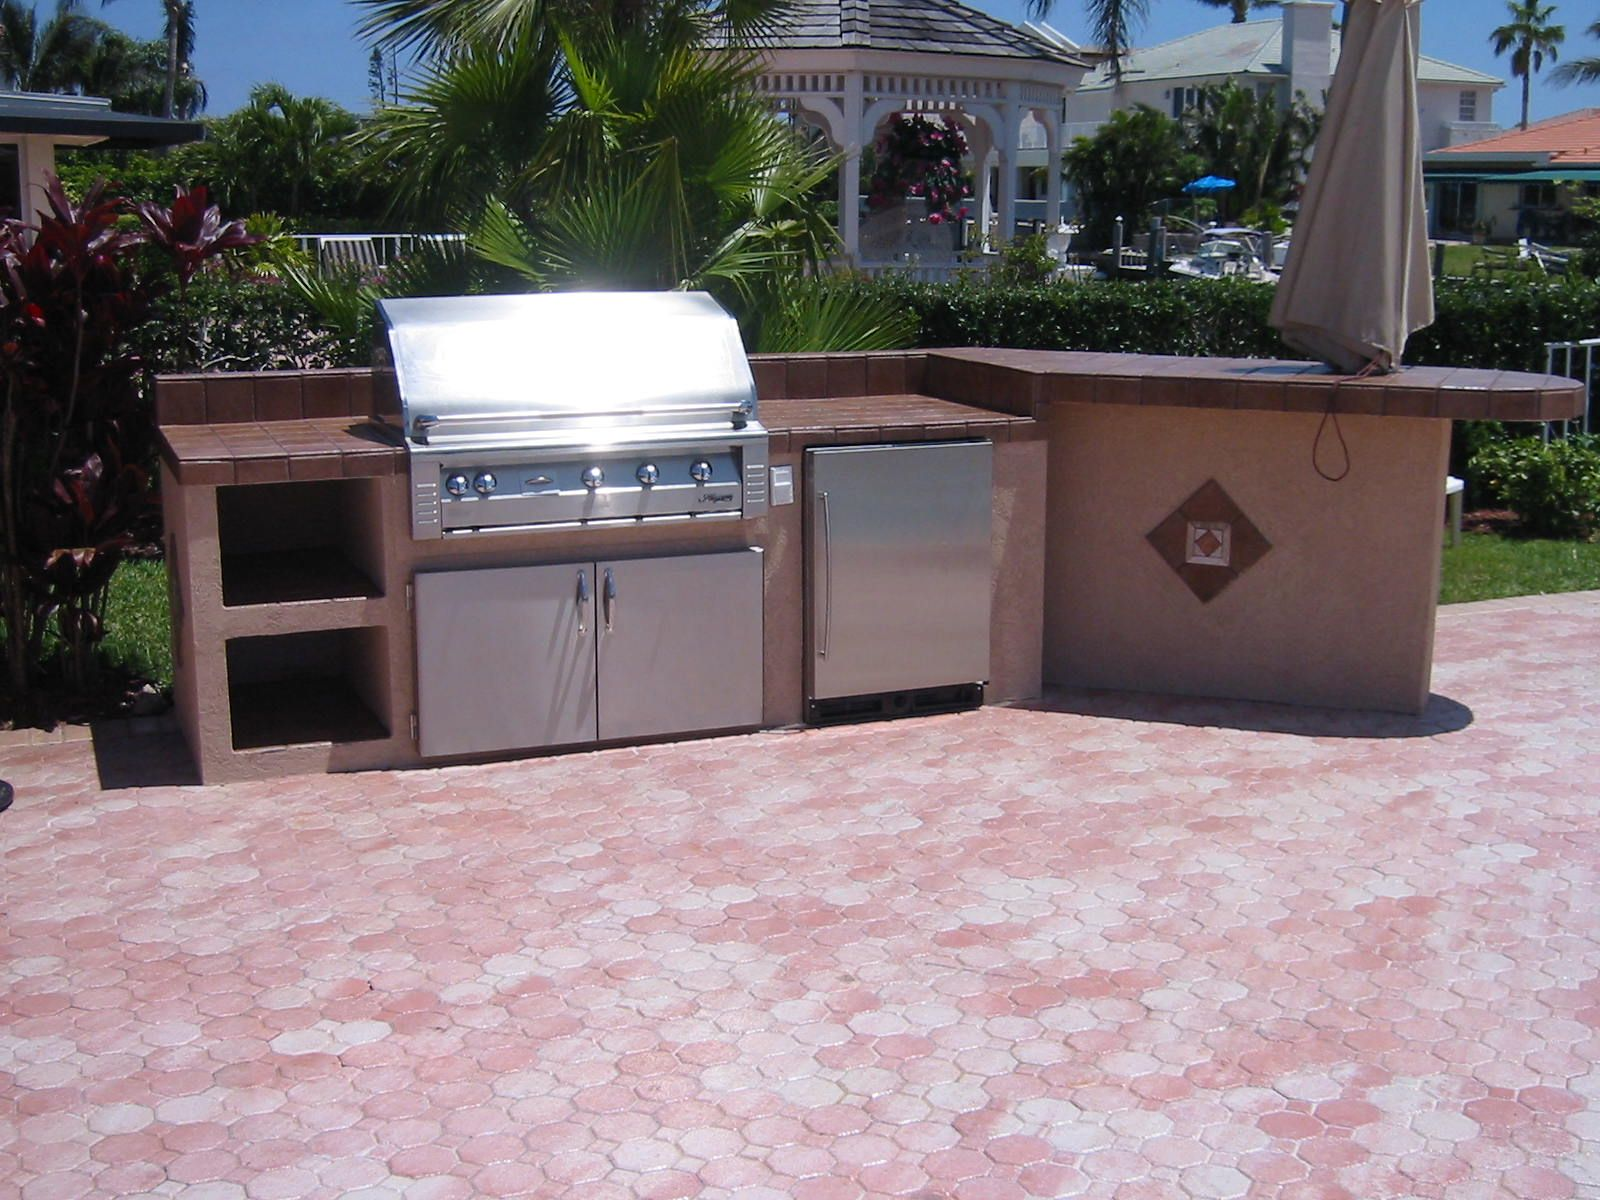 Barbeque picnic built in outdoor grills more outdoor for Outdoor barbecue grill designs